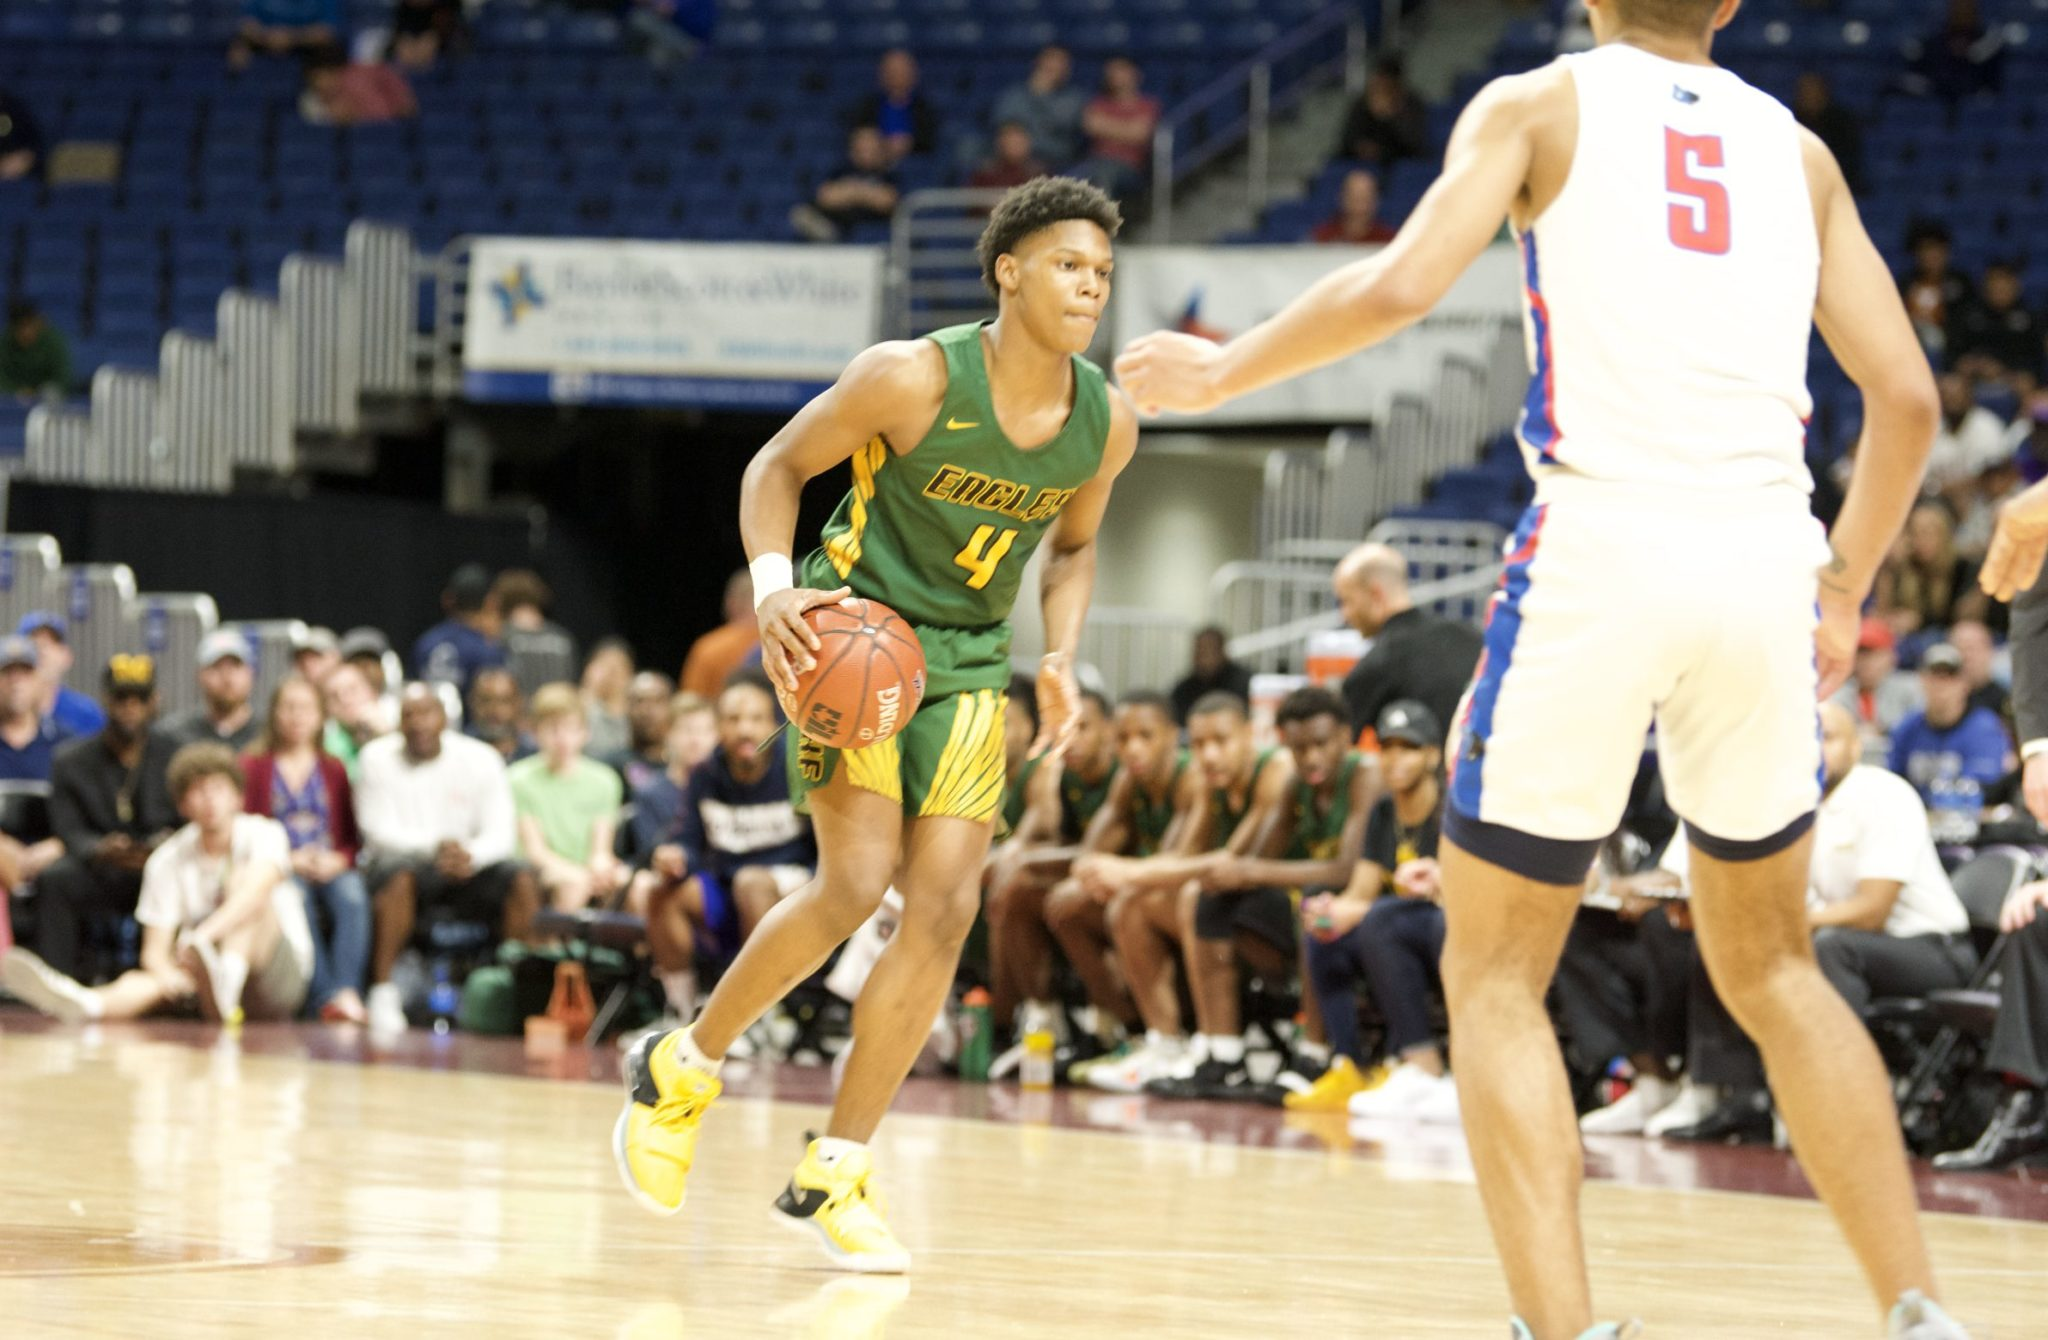 Klein Forest Takes Home Silver at Boys Basketball State Championship